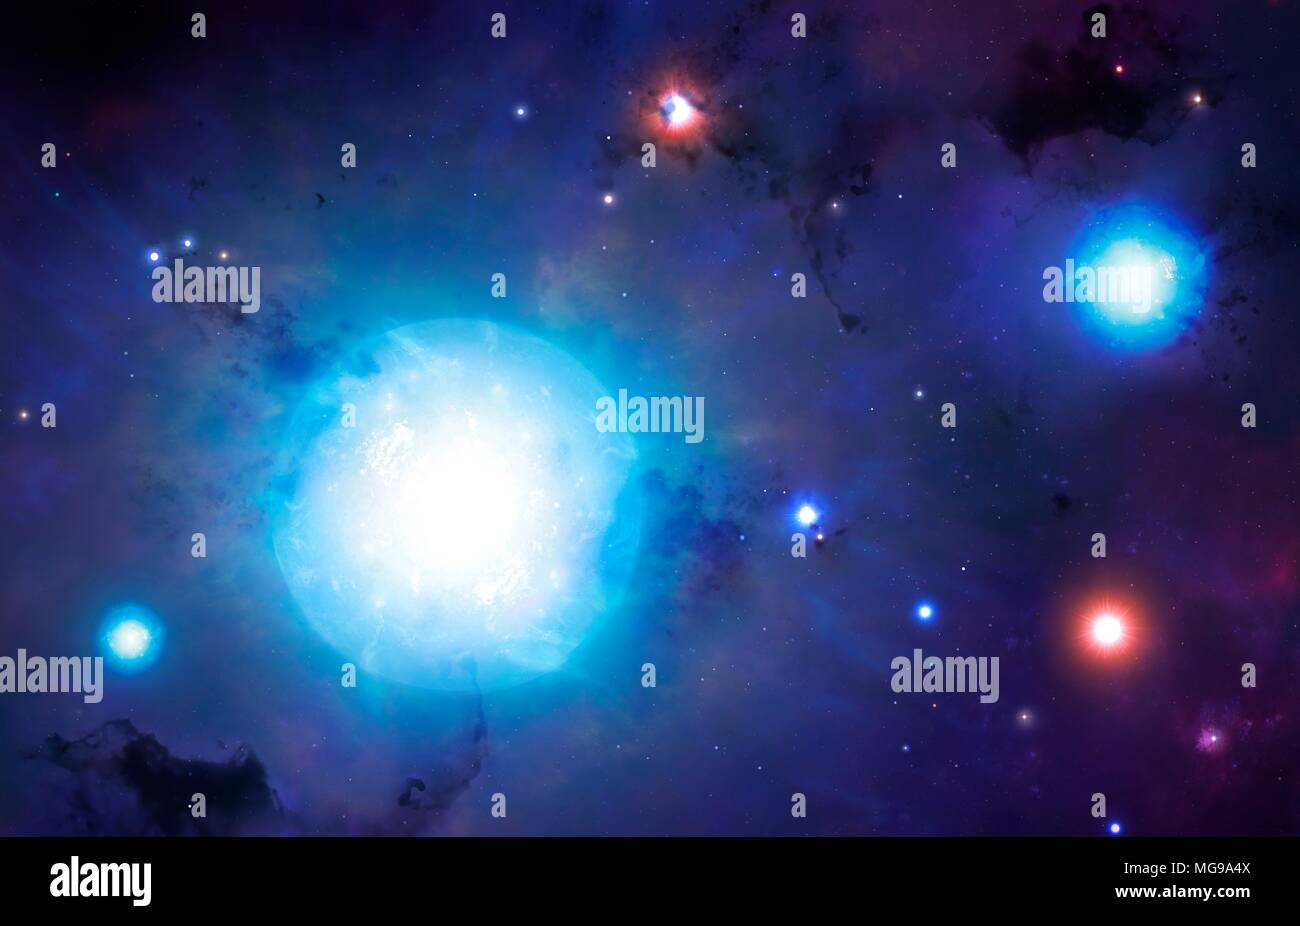 Illustration of the Universe's first generations of stars. Scientists estimate that the first stars began to shine when the Universe was just 180 million years old, a fraction of its 13.8-billion-year age. Astronomers have detected these stars indirectly for the first time, by observing the signals in hydrogen gas that these stars illuminated. These stars are theorized to have been very massive, burning through their hydrogen supplies in around a million years or so, and then turning into the red giants and supergiants seen in this illustration. - Stock Image